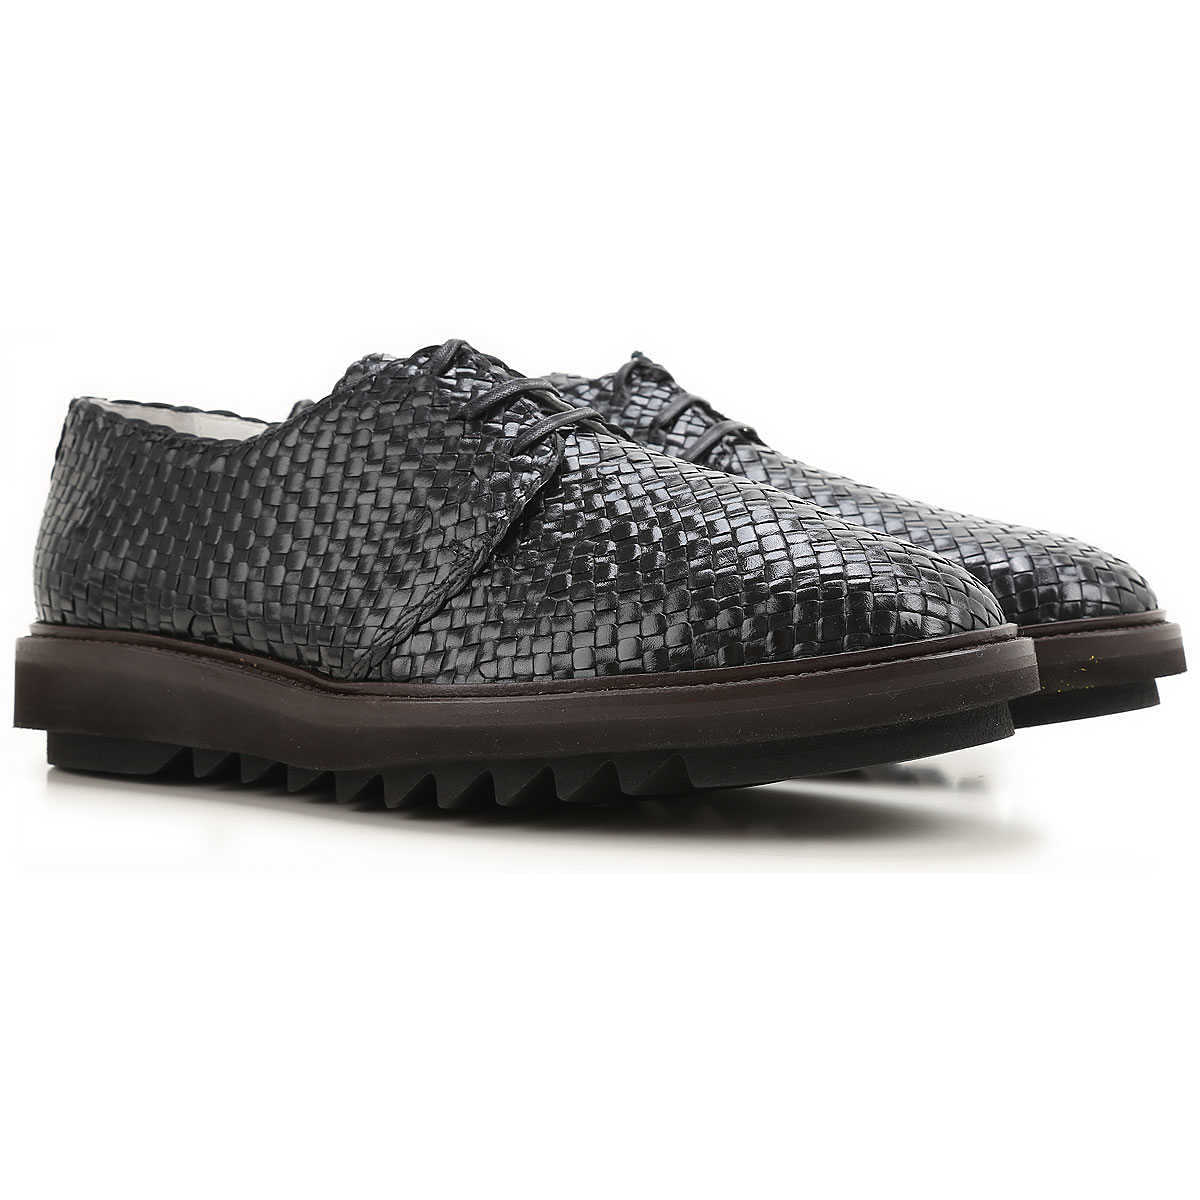 Dolce & Gabbana Lace Up Shoes for Men Oxfords Derbies and Brogues On Sale DK - GOOFASH - Mens FORMAL SHOES